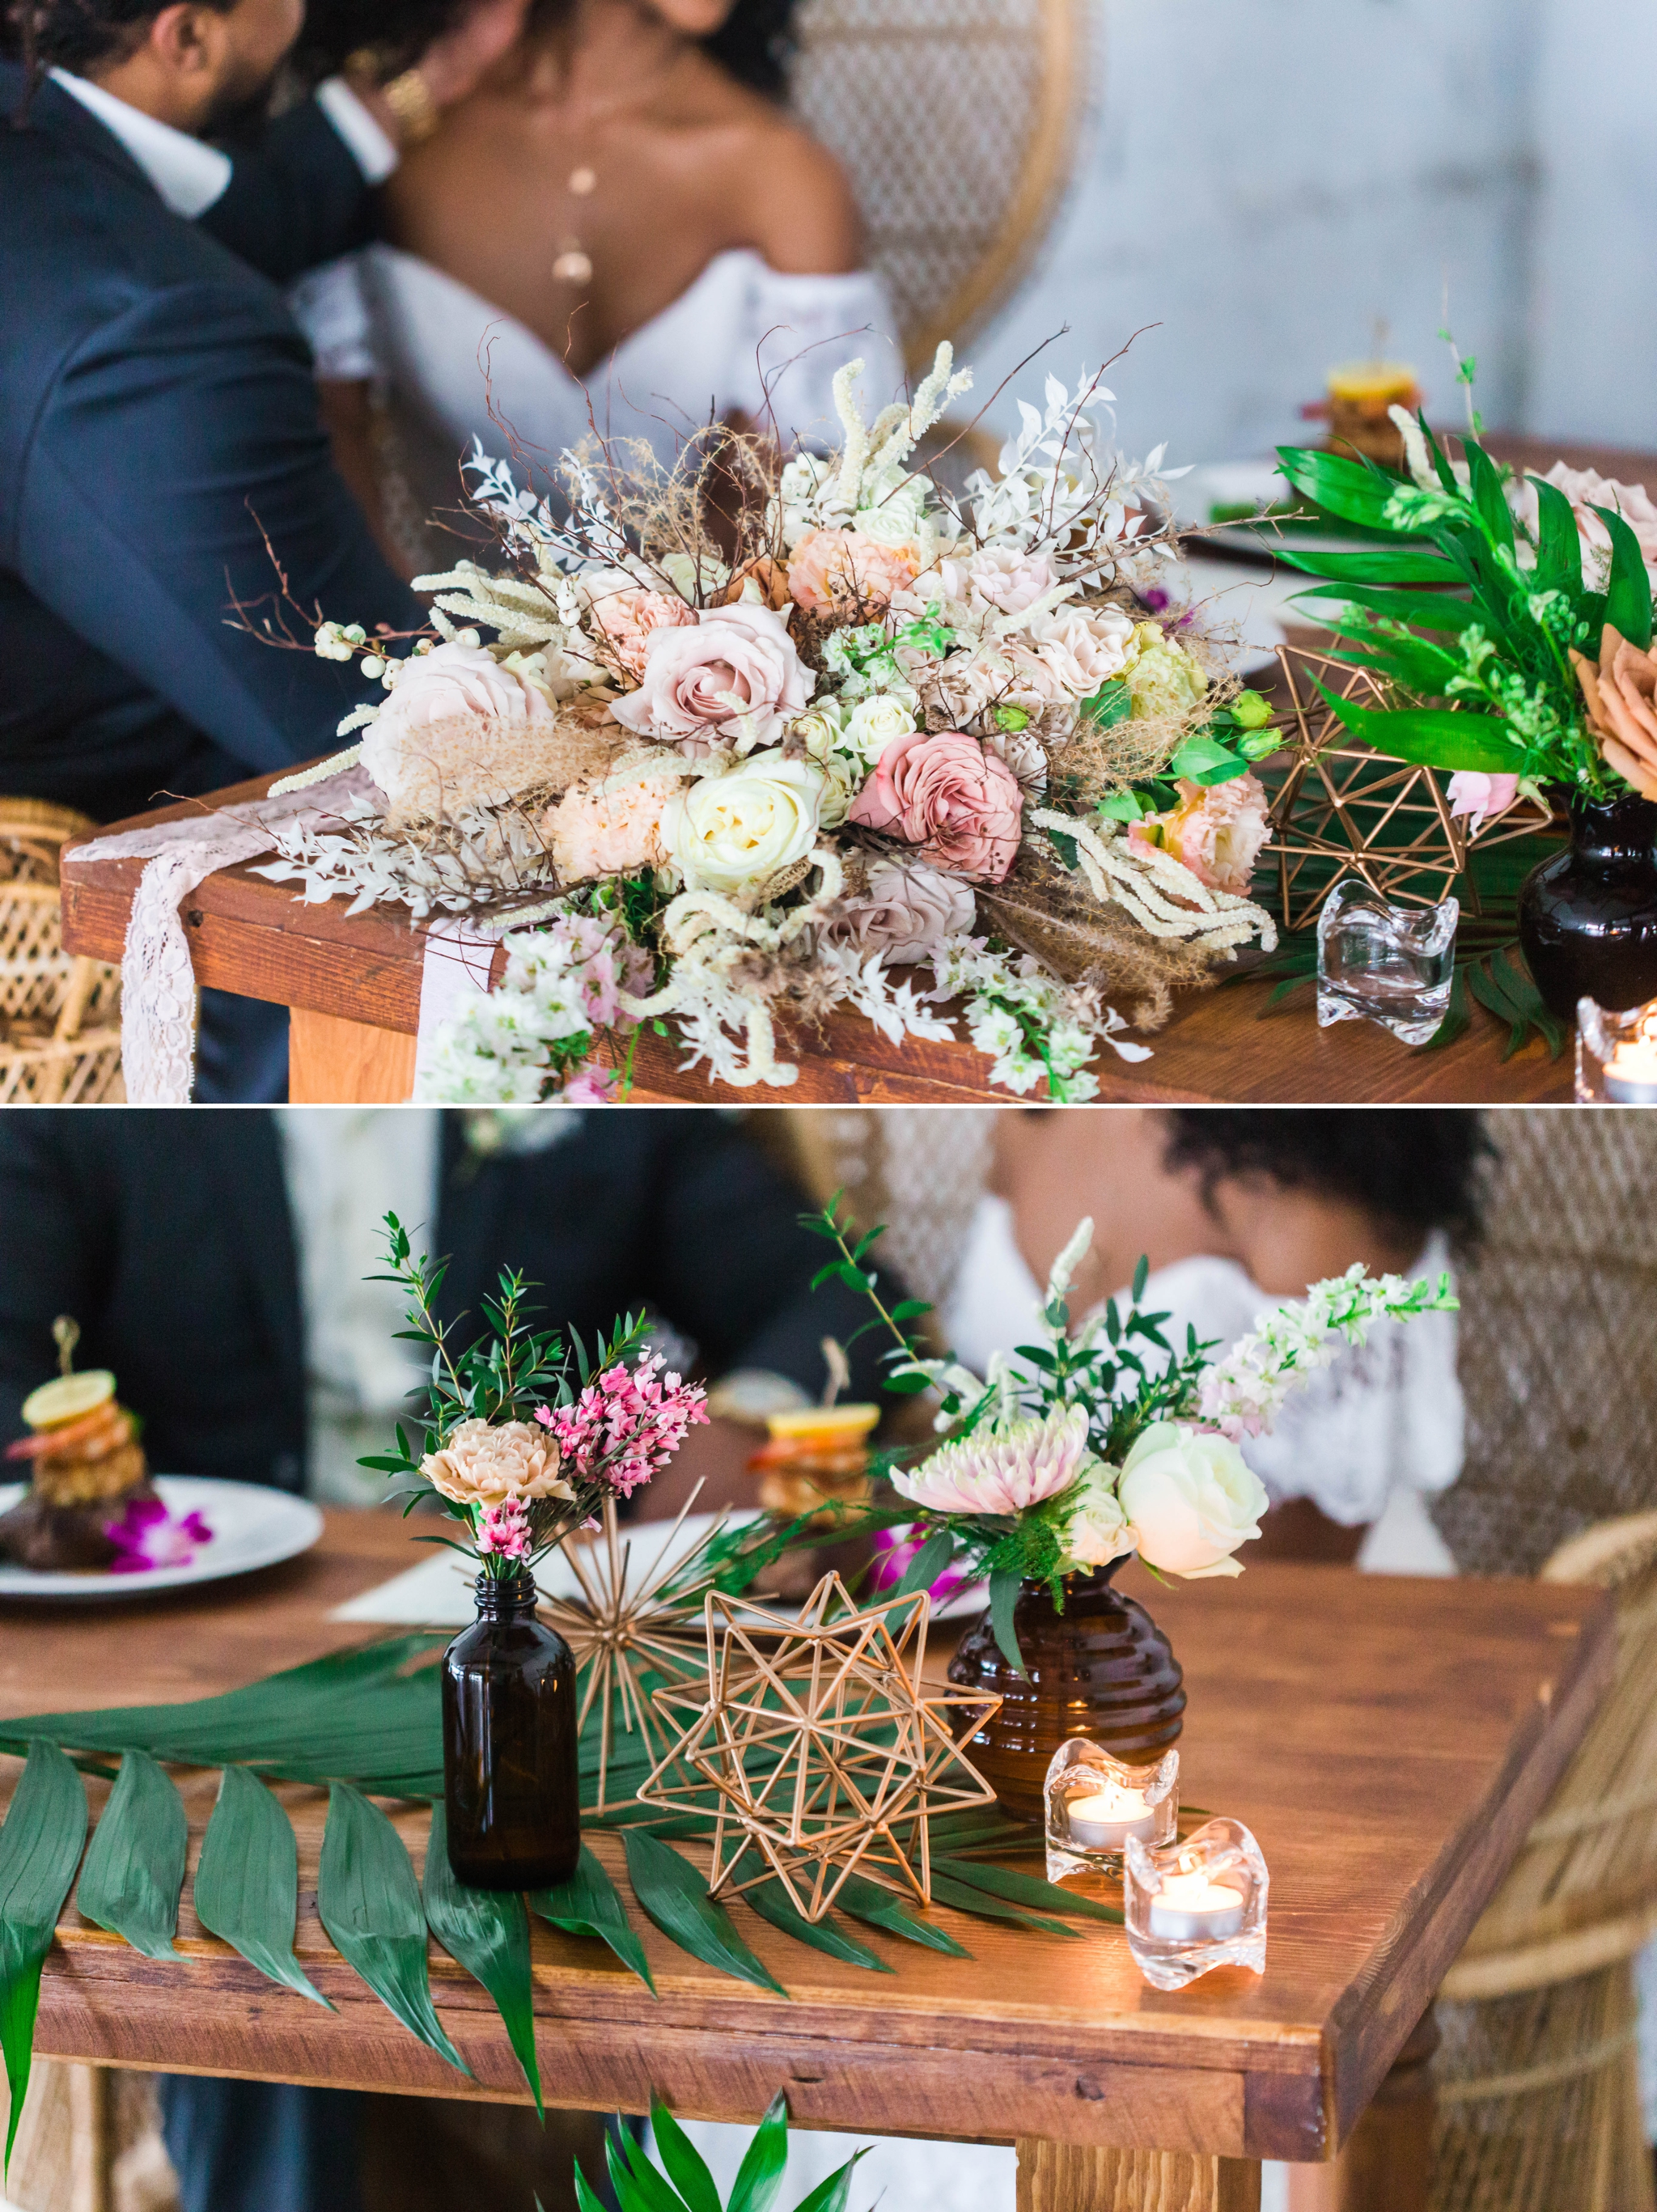 Bride and groom at the sweetheart table at their wedding reception sitting in Midcentury Woven Wicker Peacock Chairs - Black Love - Tropical Destination Wedding Inspiration - Oahu Hawaii Wedding Photography - indoor natural light photographer